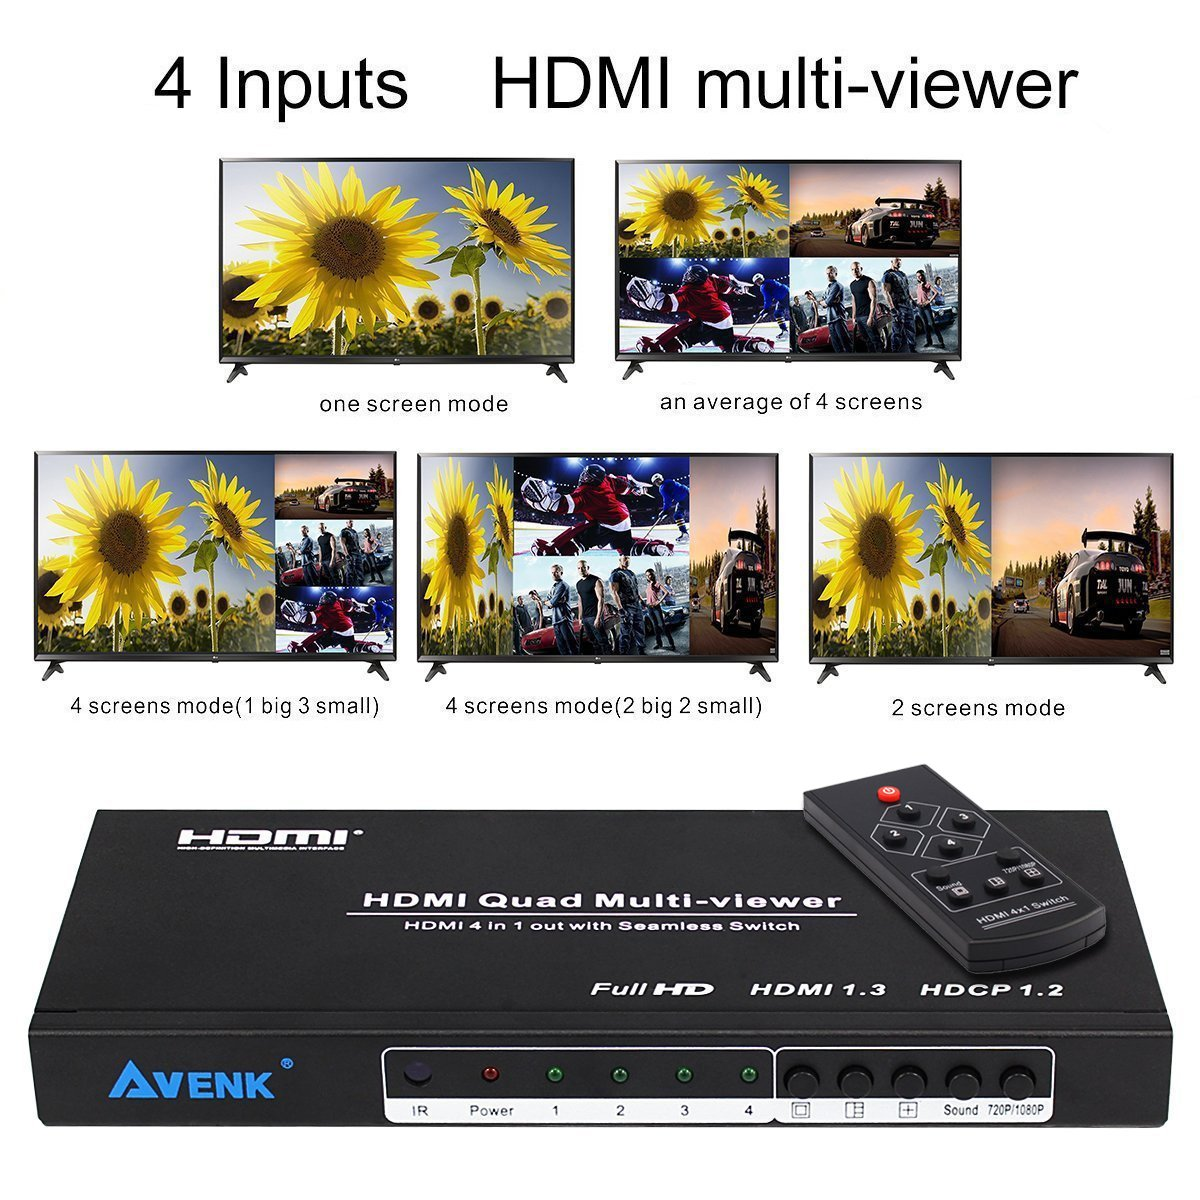 AVENK Quad Multi-Viewer 4x1 HDMI Switcher 4 Ports with Seamless Switch and IR Remote Support 1080P HDMI 1.3a